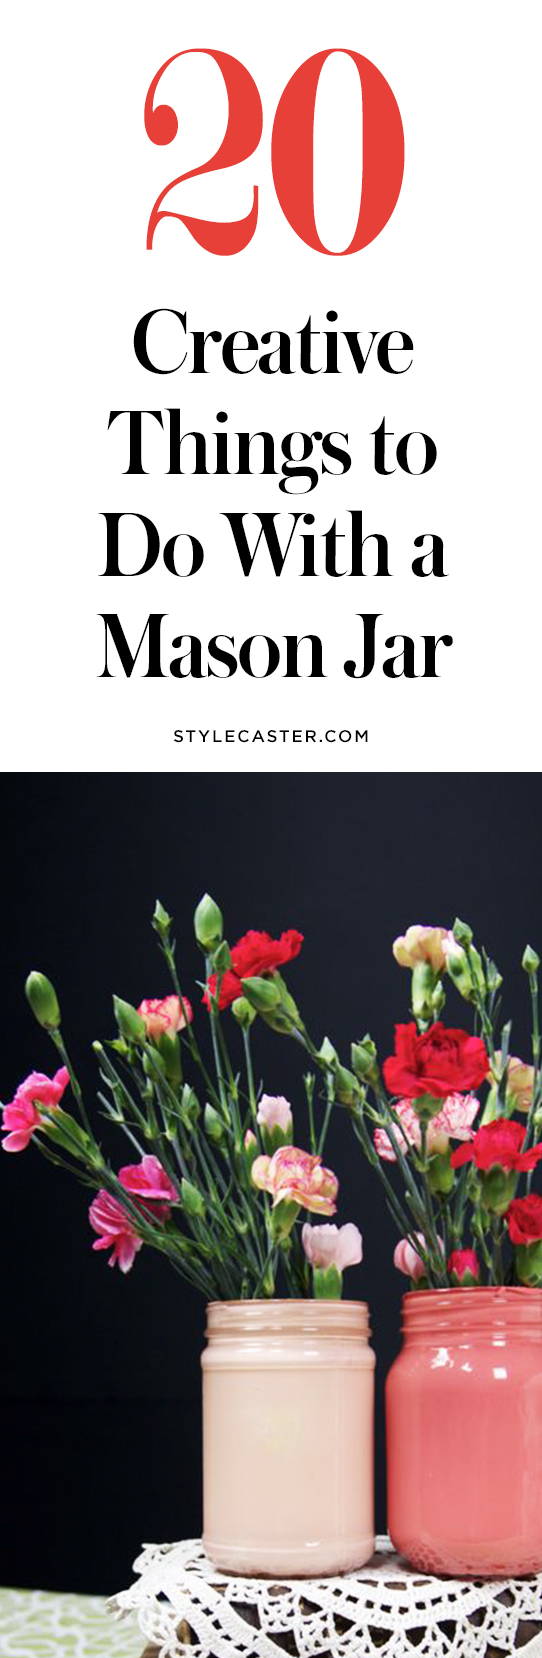 20 creative DIY things to do with a mason jar | @stylecaster